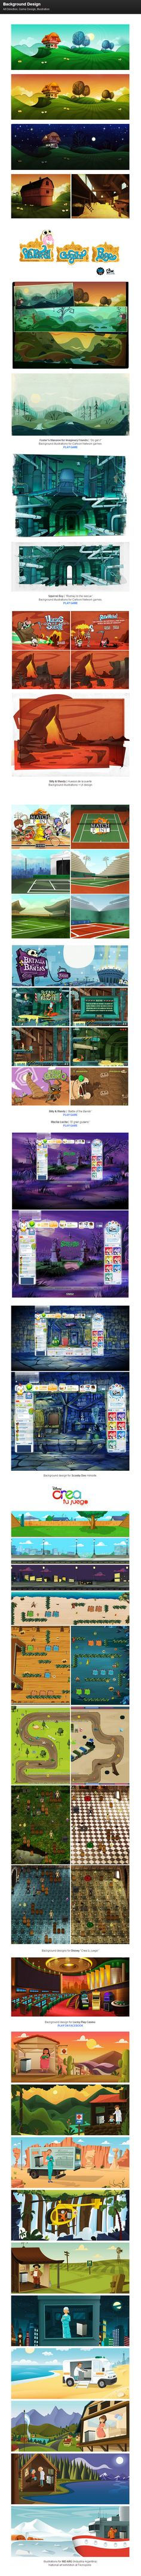 Background Design on Behance ★ Find more at http://www.pinterest.com/competing/